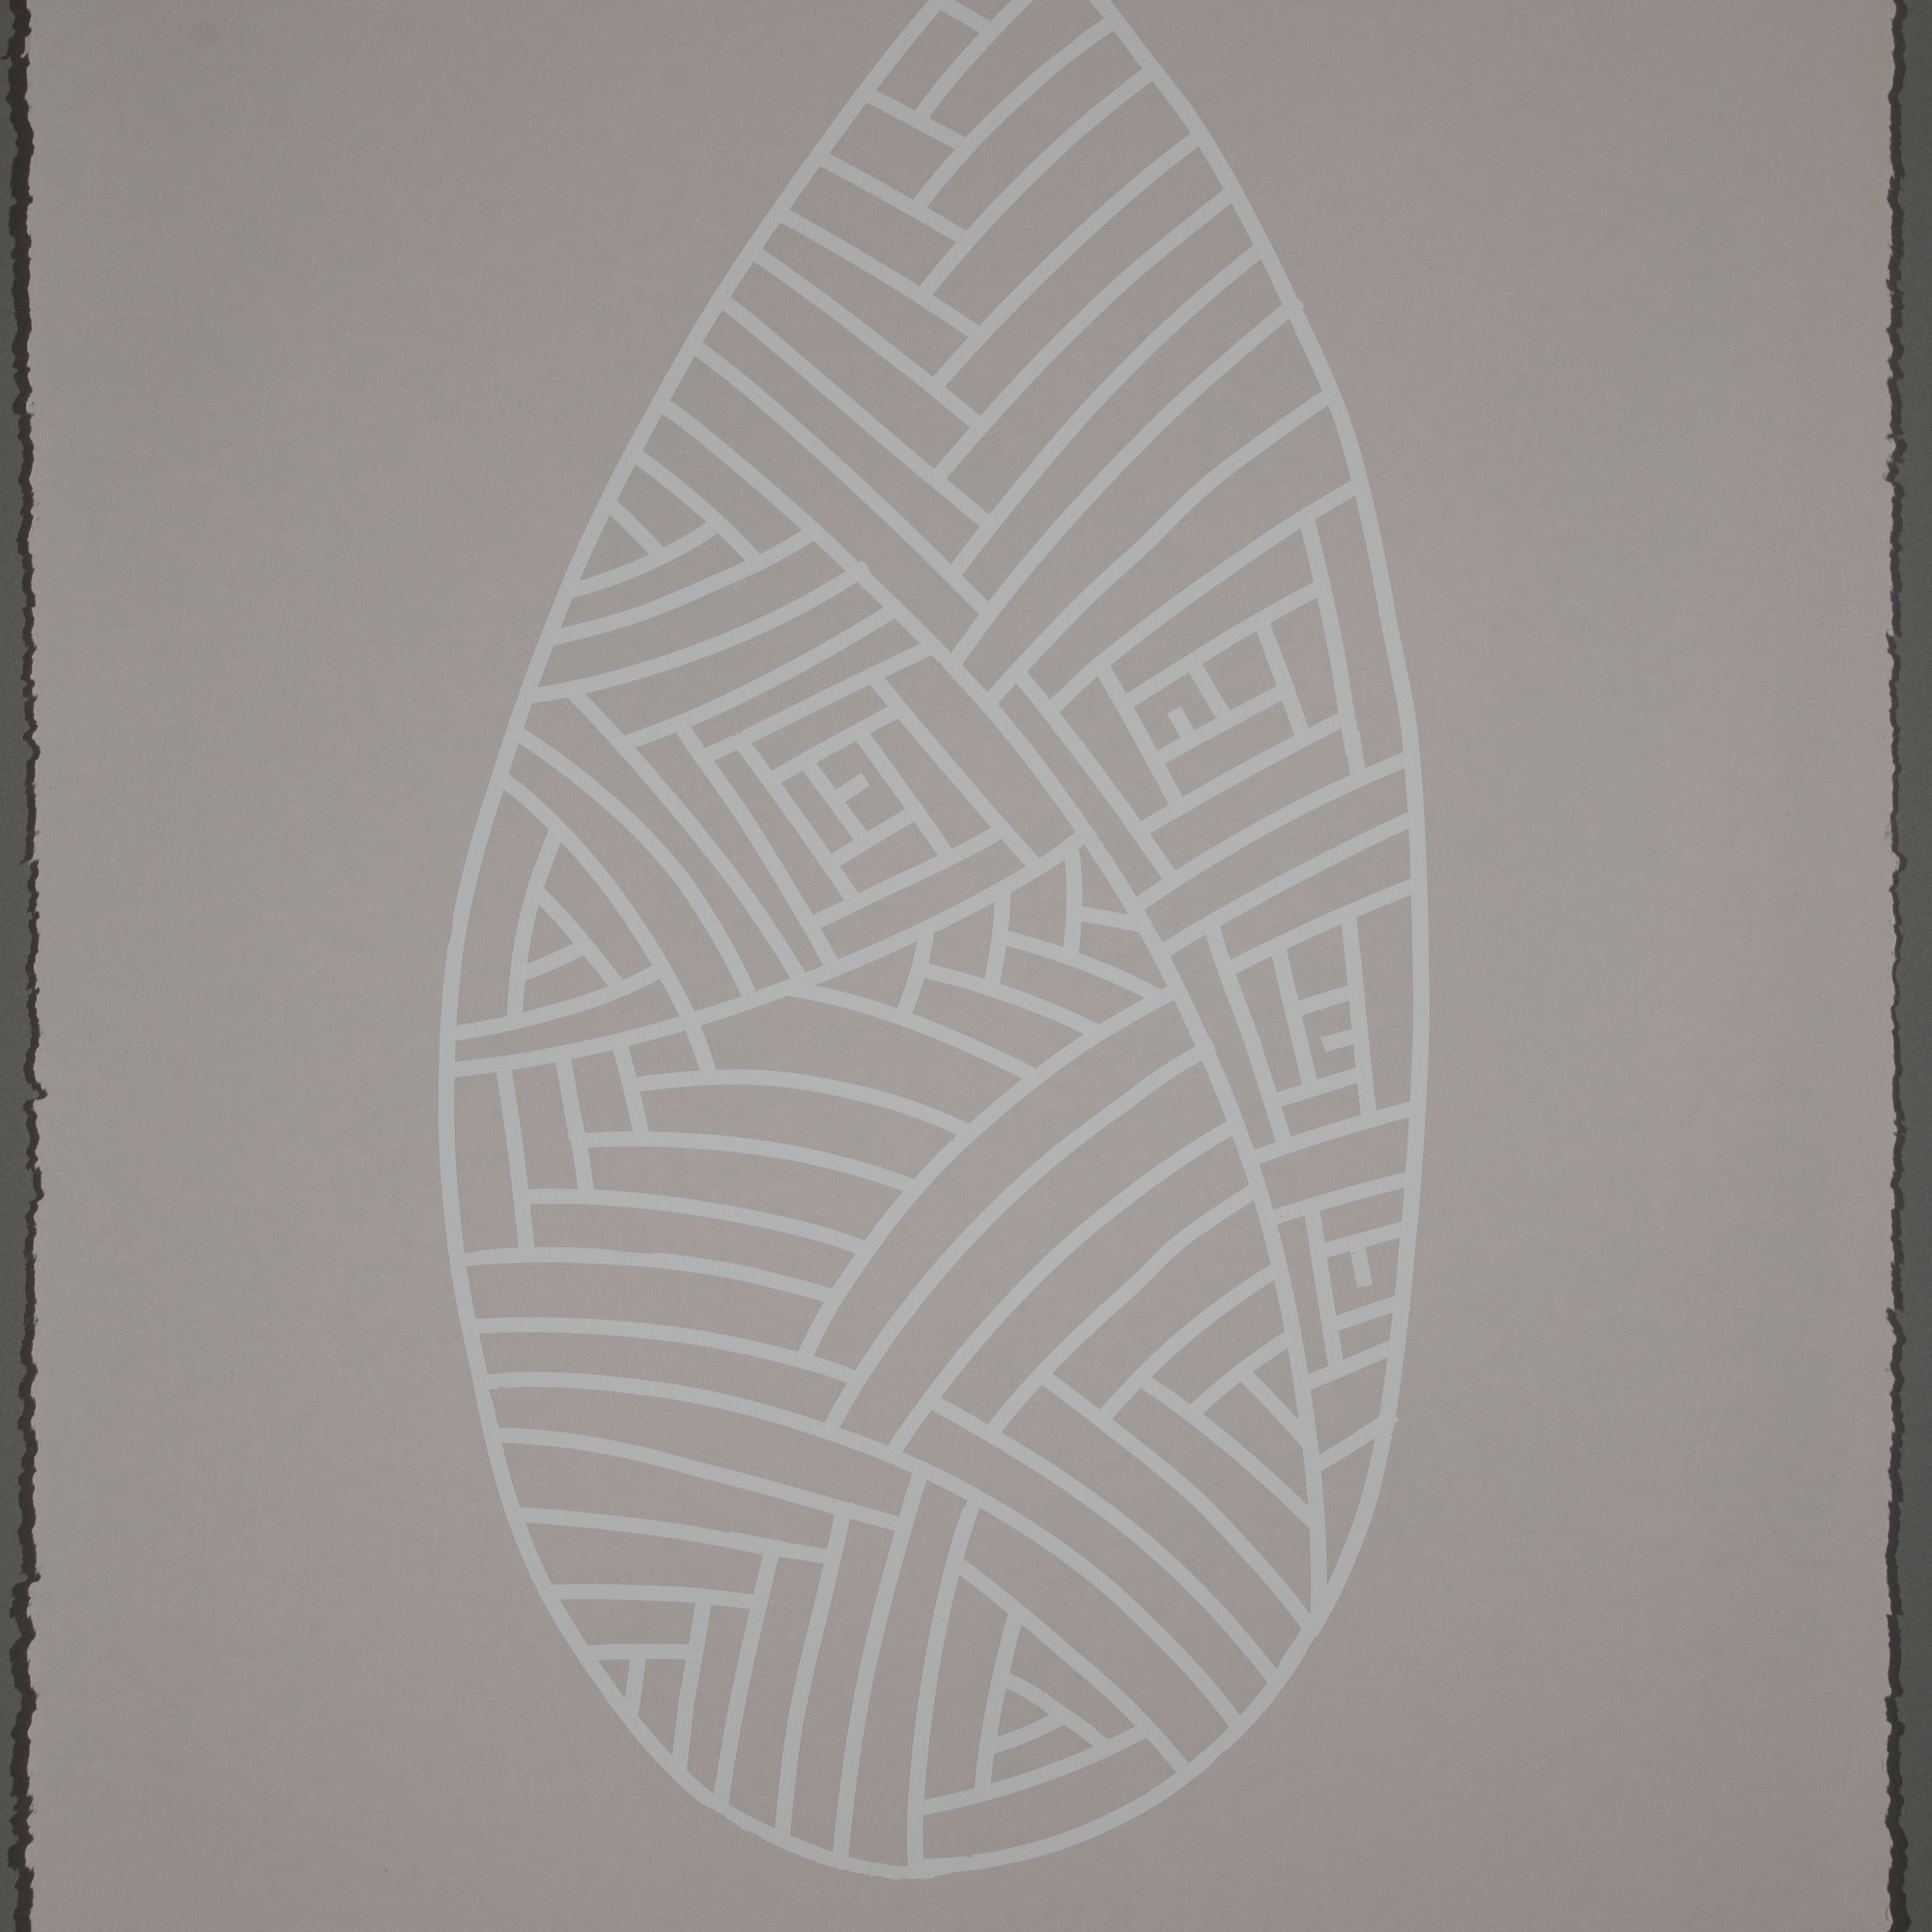 This work is included in Taragara's exhibition: 'Online OnCountry Gallery – an exhibition of Aboriginal Contemporary Artists'